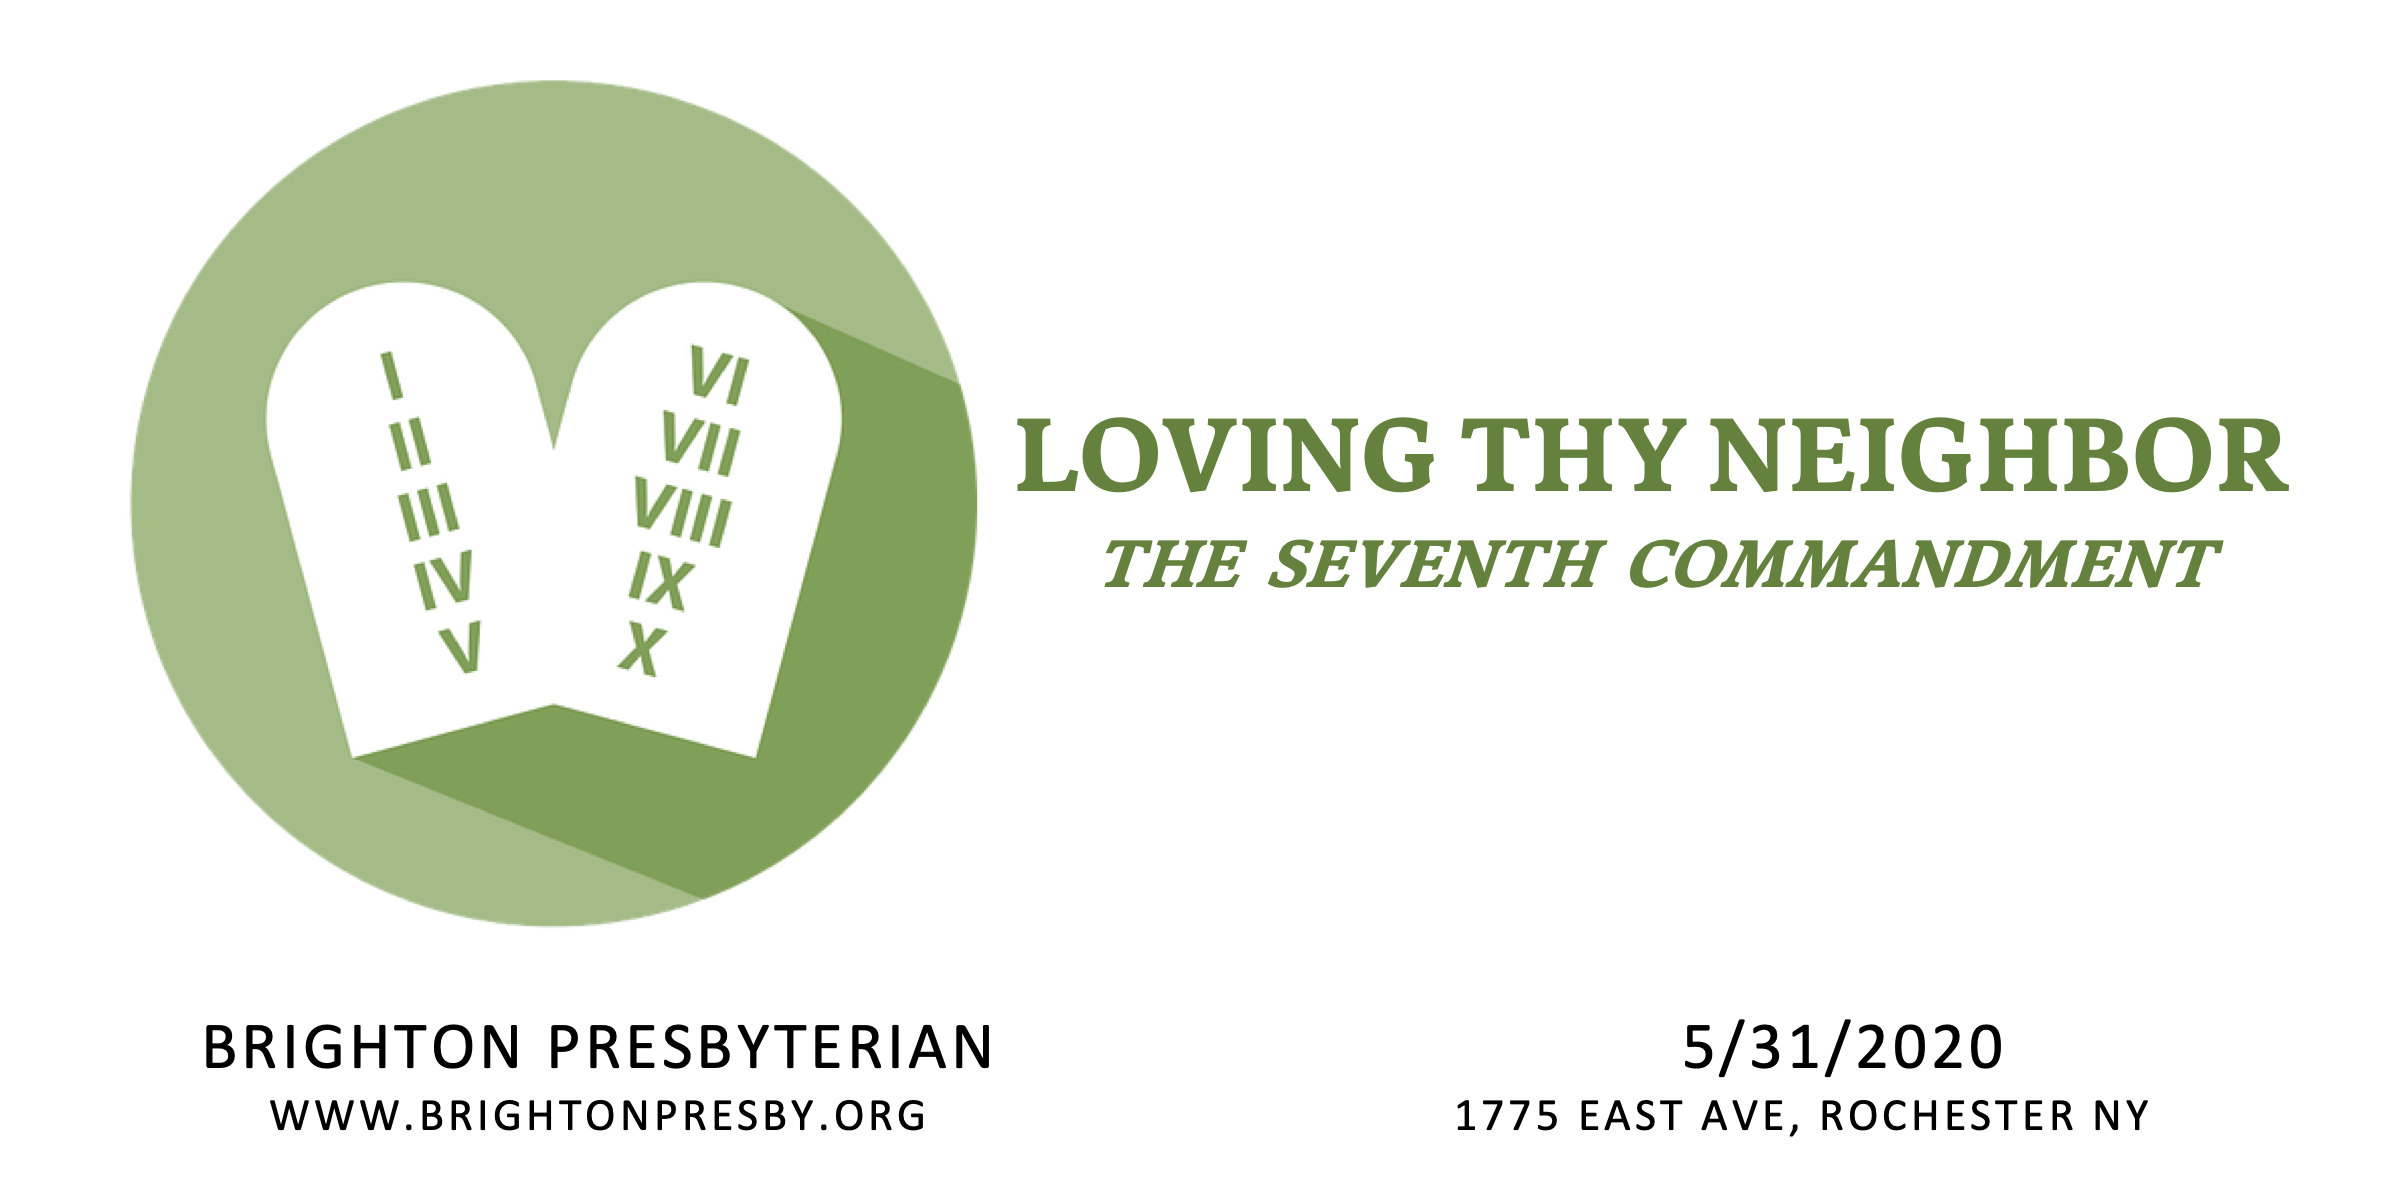 Loving Thy Neighbor: The Seventh Commandment